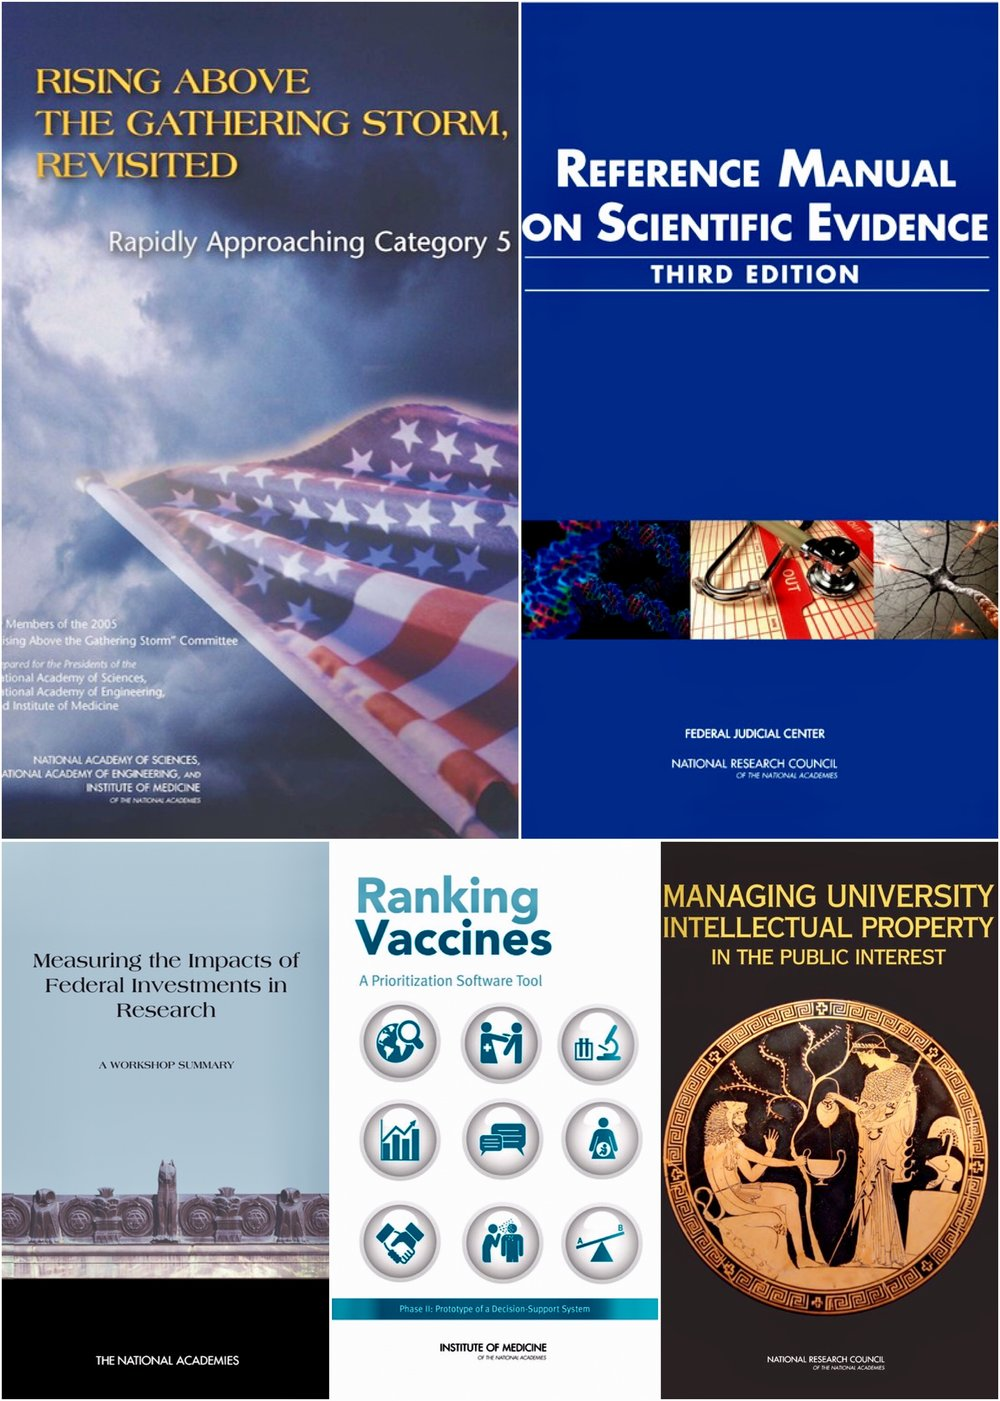 Report covers: The National Academies Press